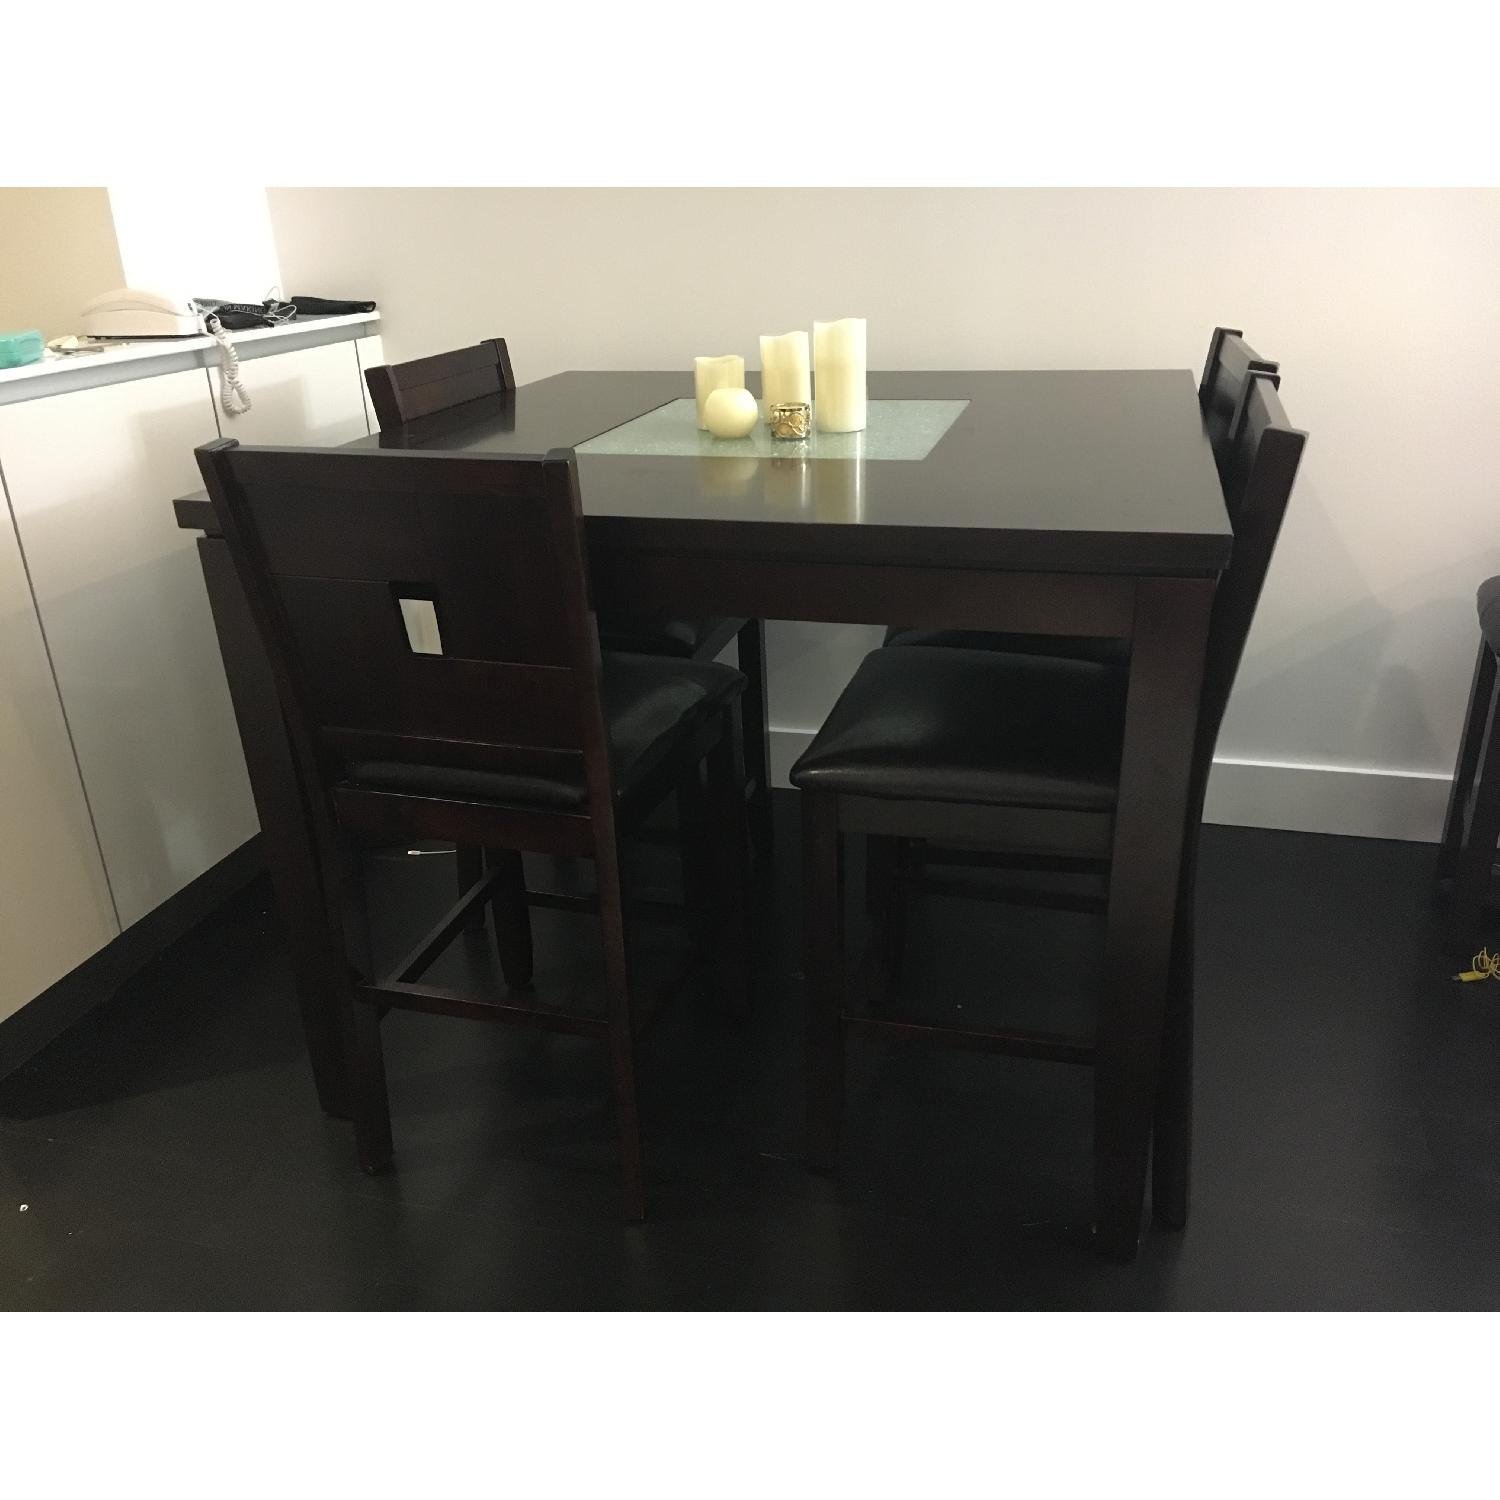 Dining Table w/ 4 Chairs + 1 Bench - image-4